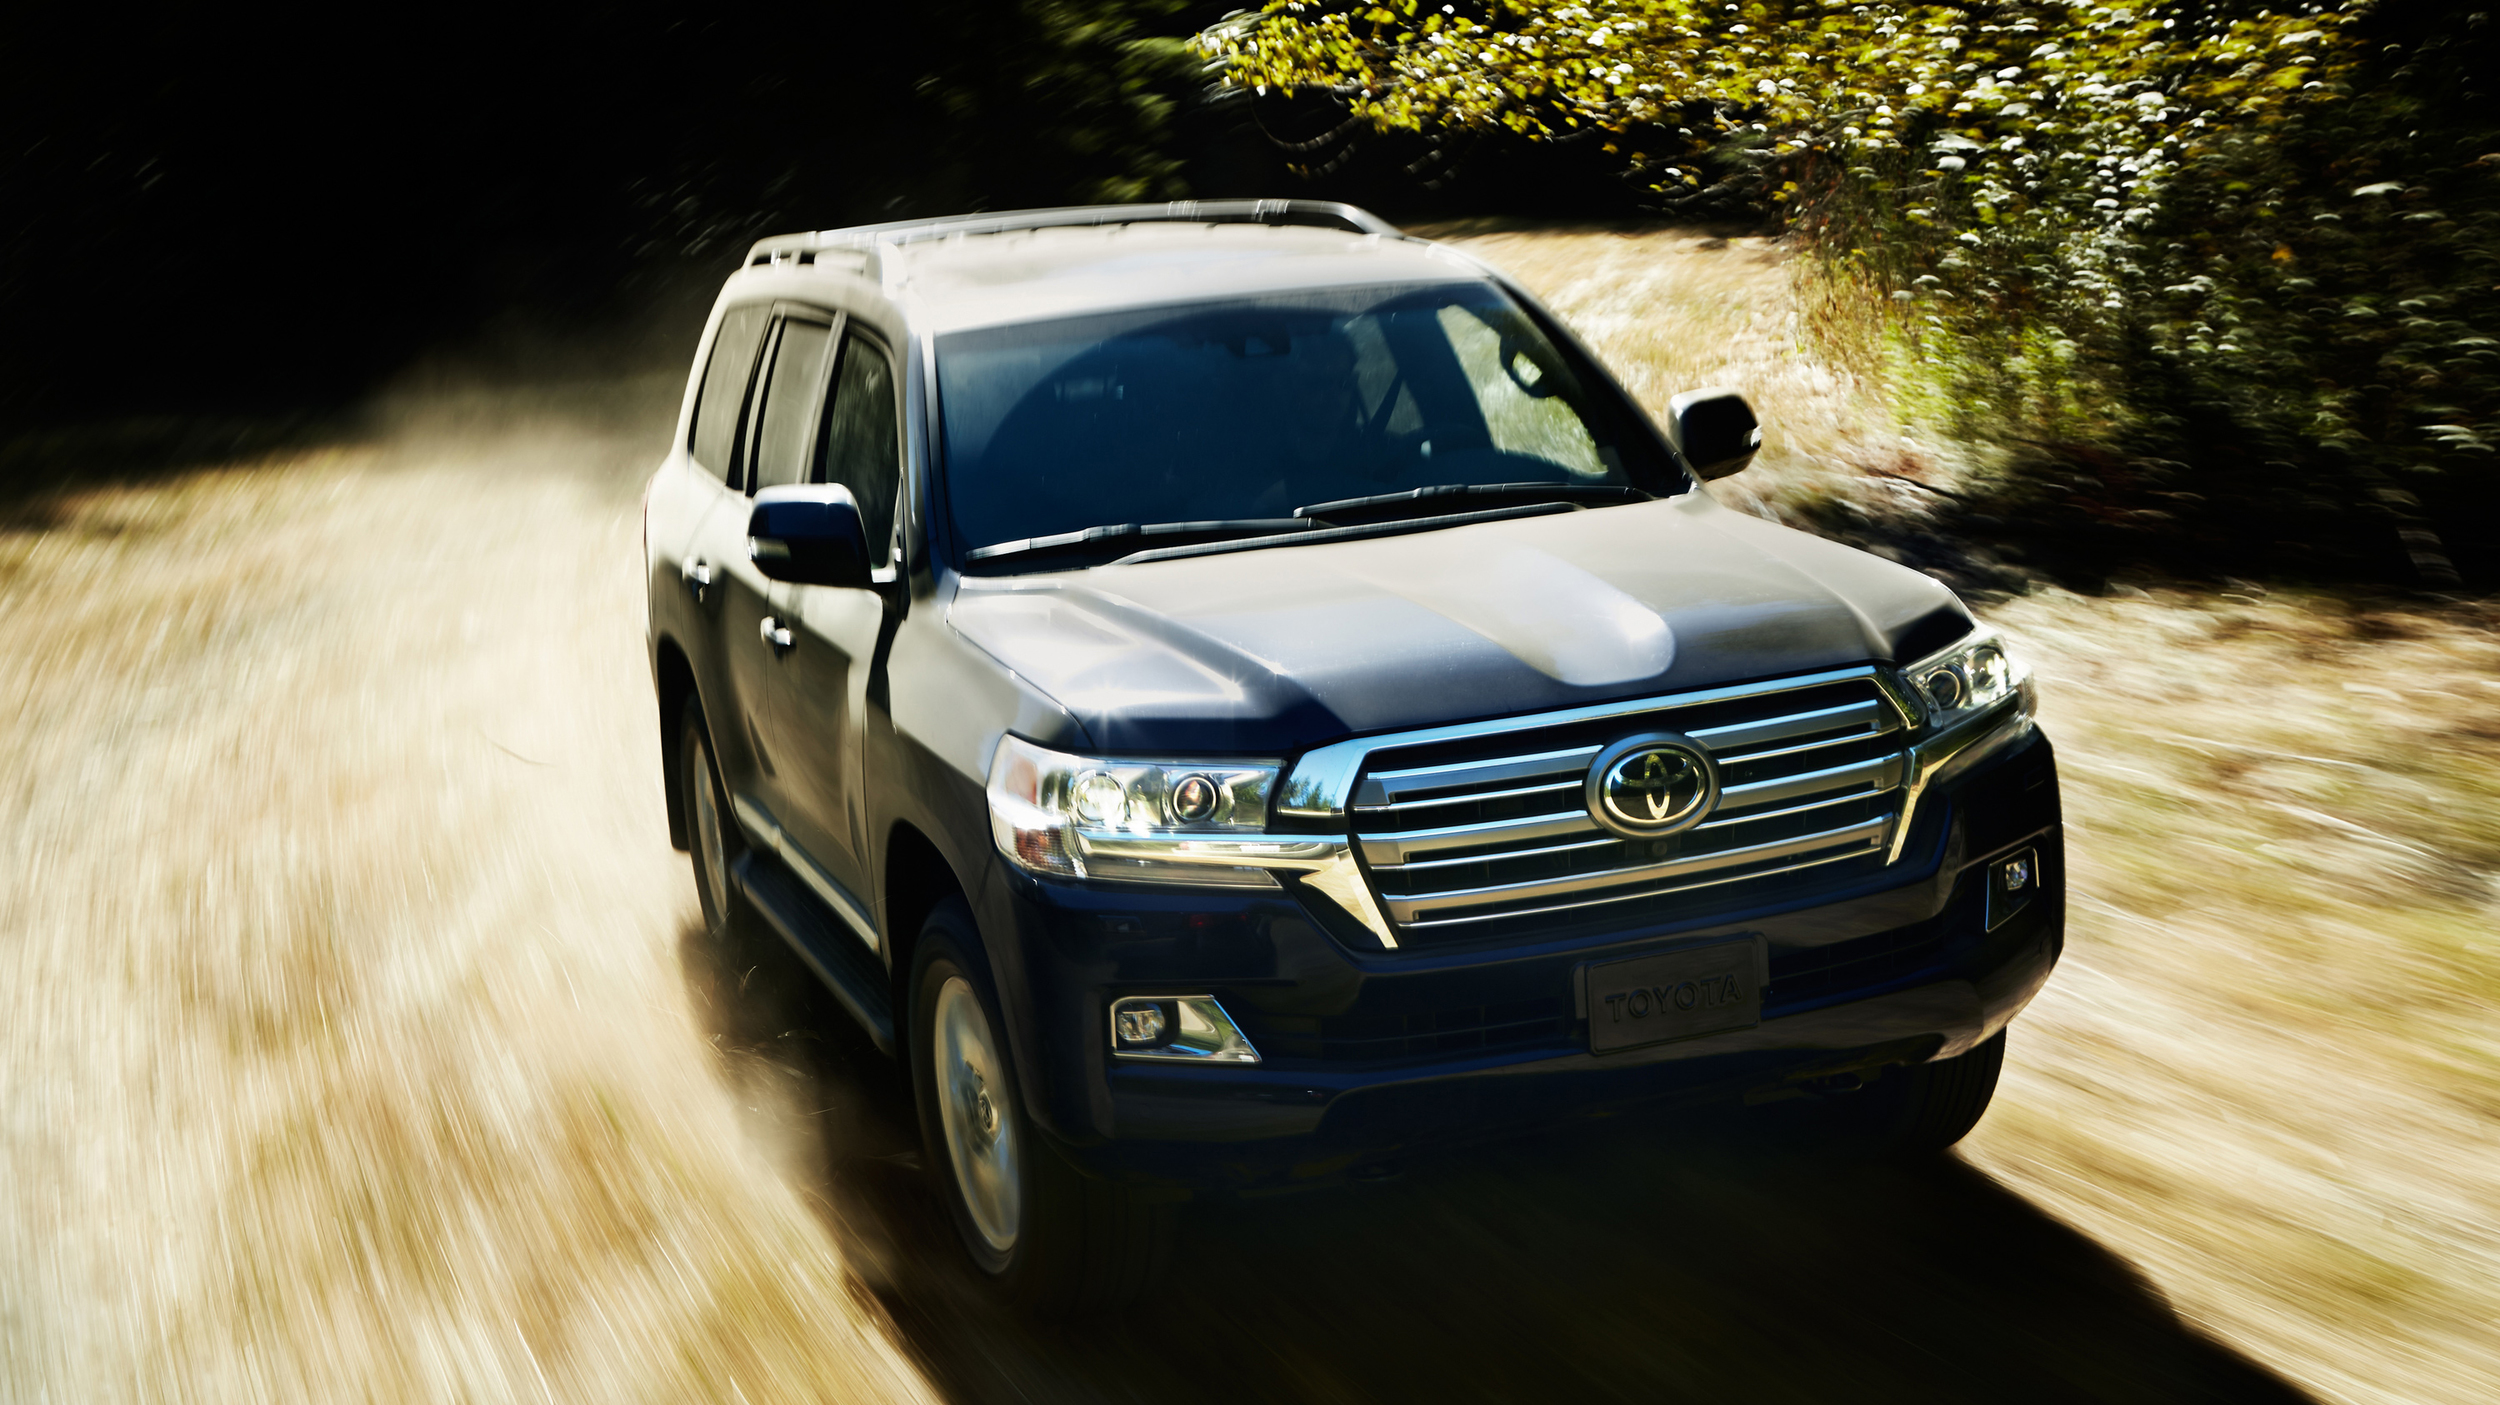 2018 Toyota Land Cruiser quick spin review | Autoblog